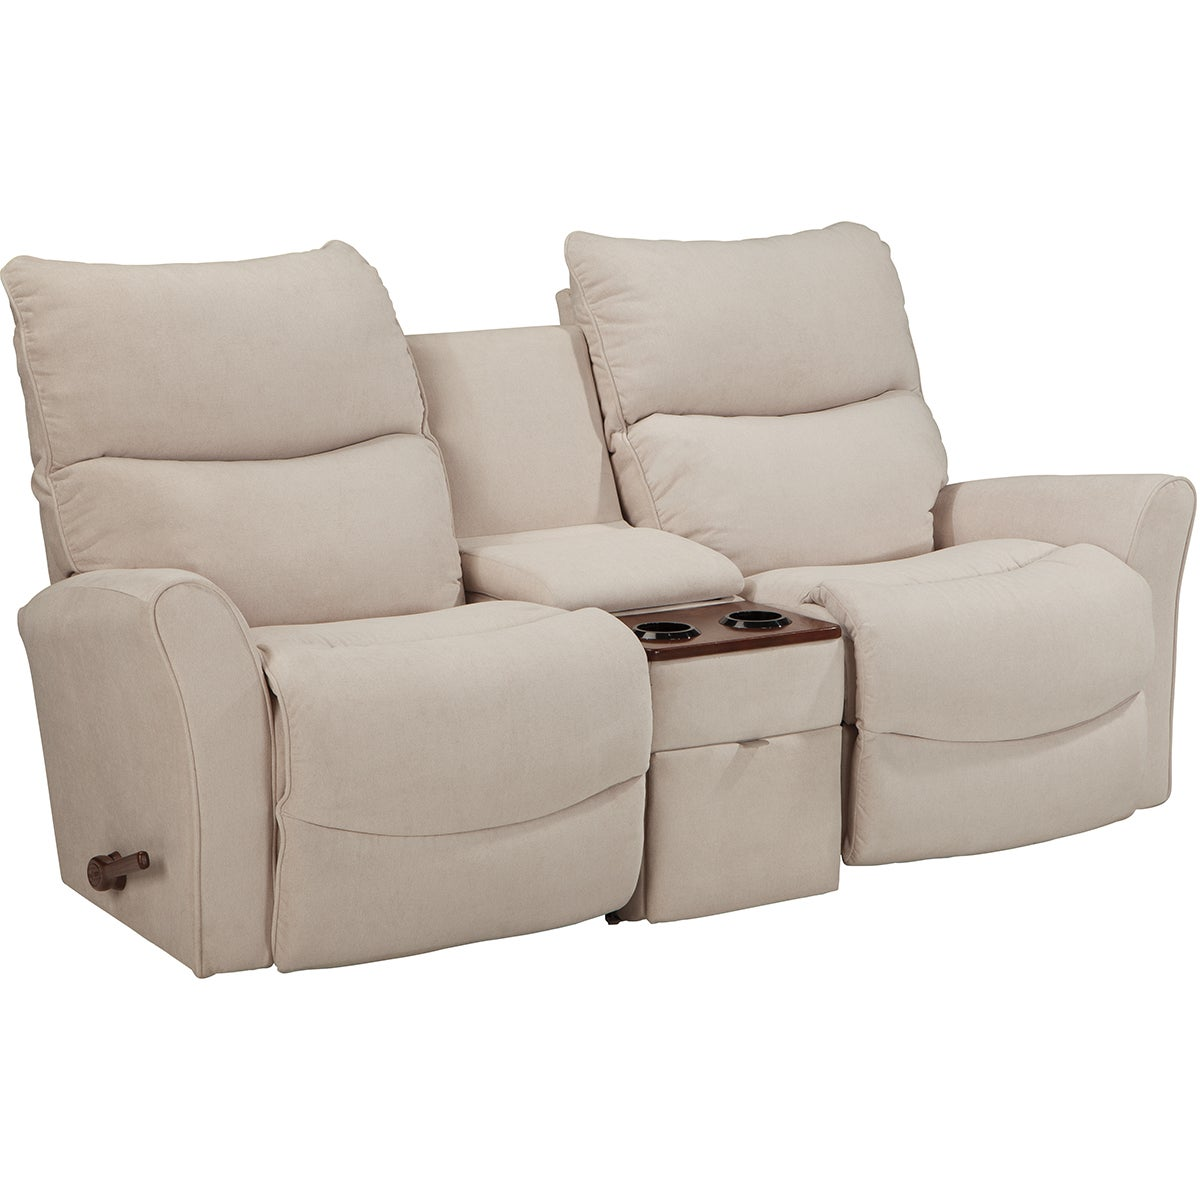 Loveseat Furniture La Z Boy